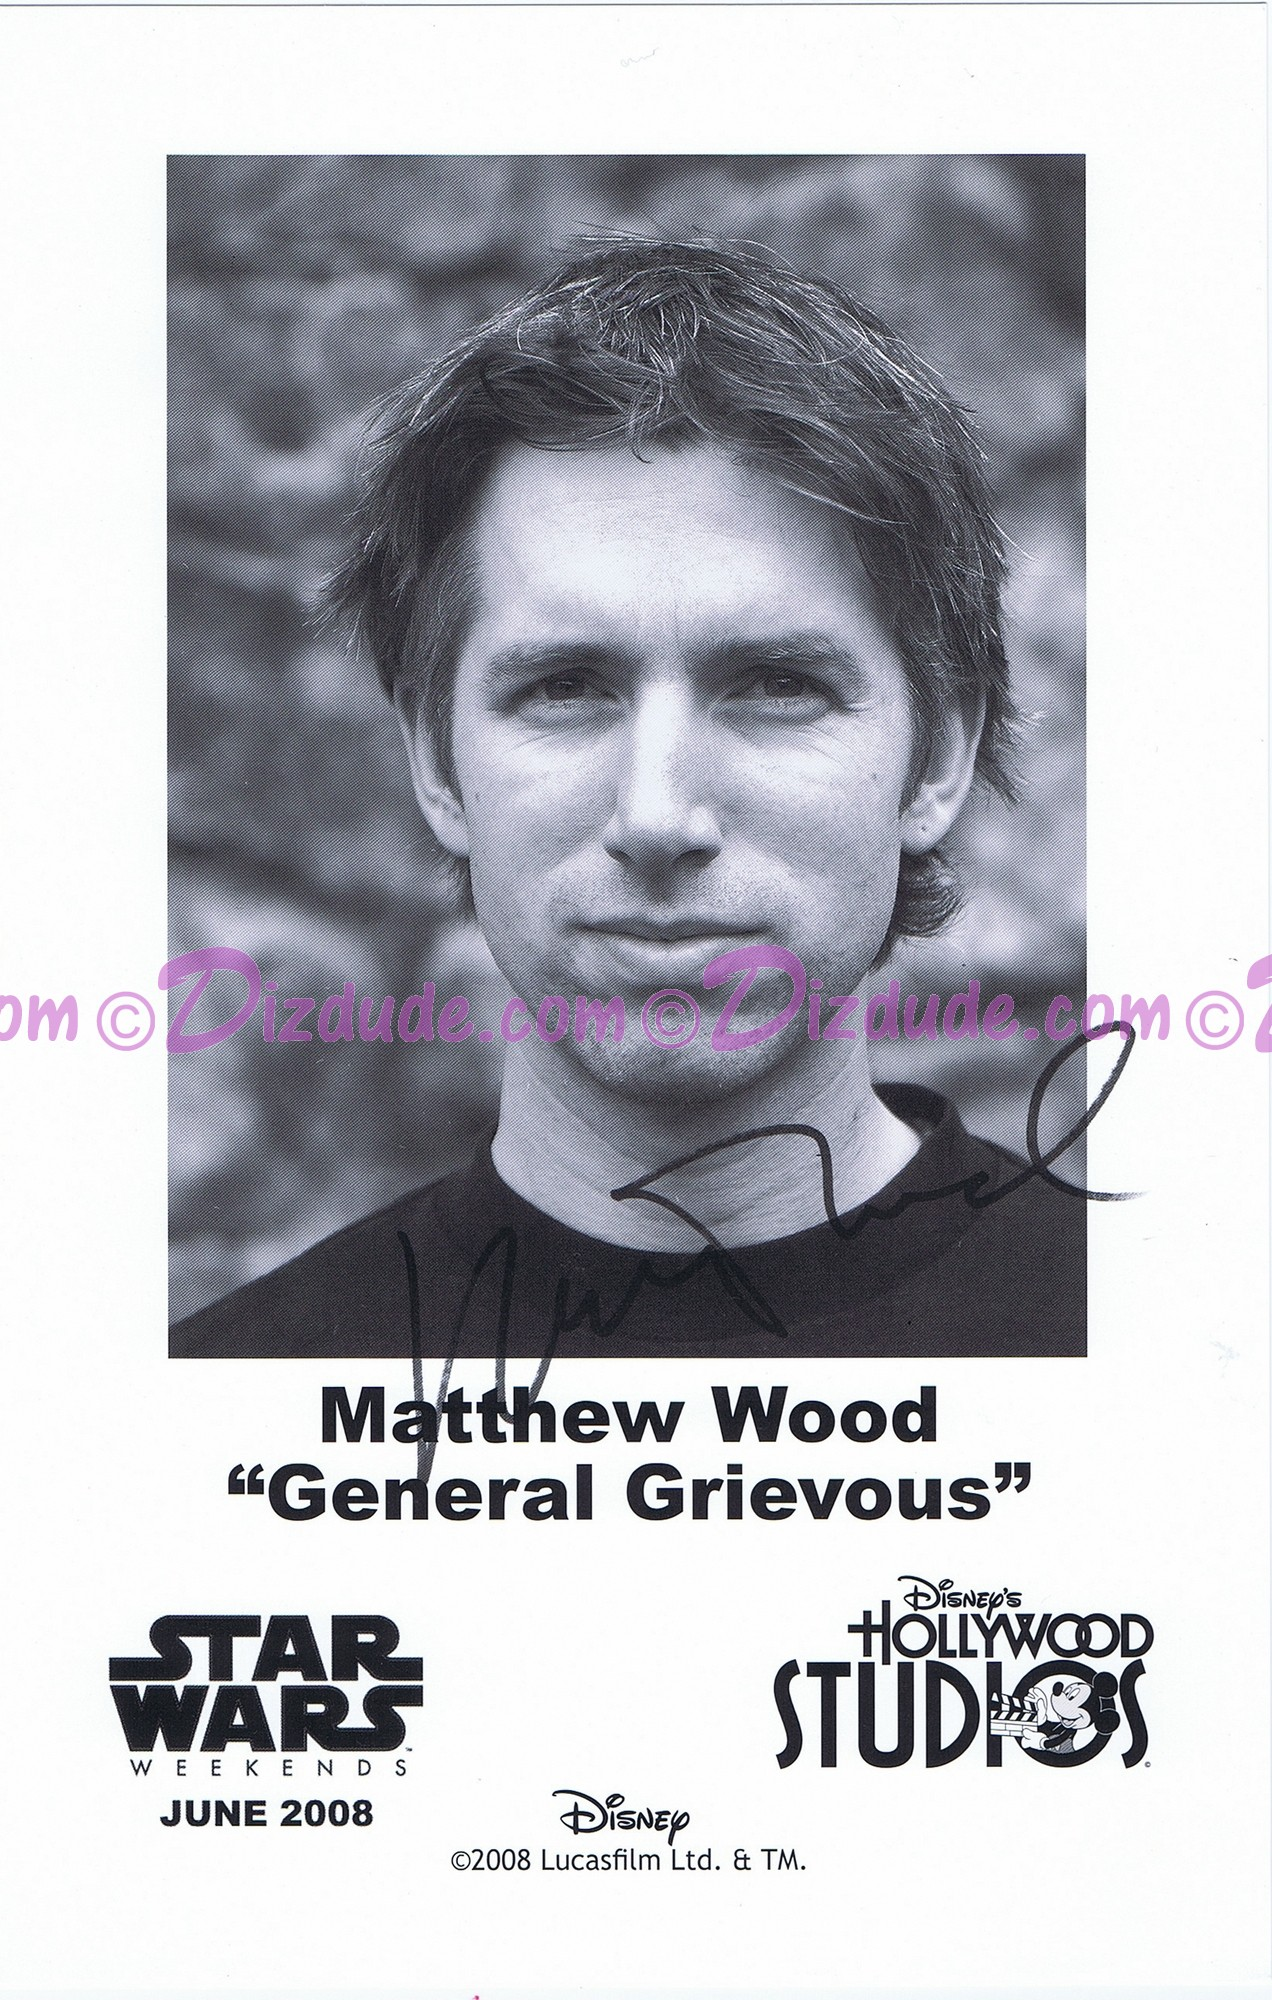 Matthew Wood the voice of General Grievous & Battle Droids Presigned Official Star Wars Weekends 2008 Celebrity Collector Photo © Dizdude.com